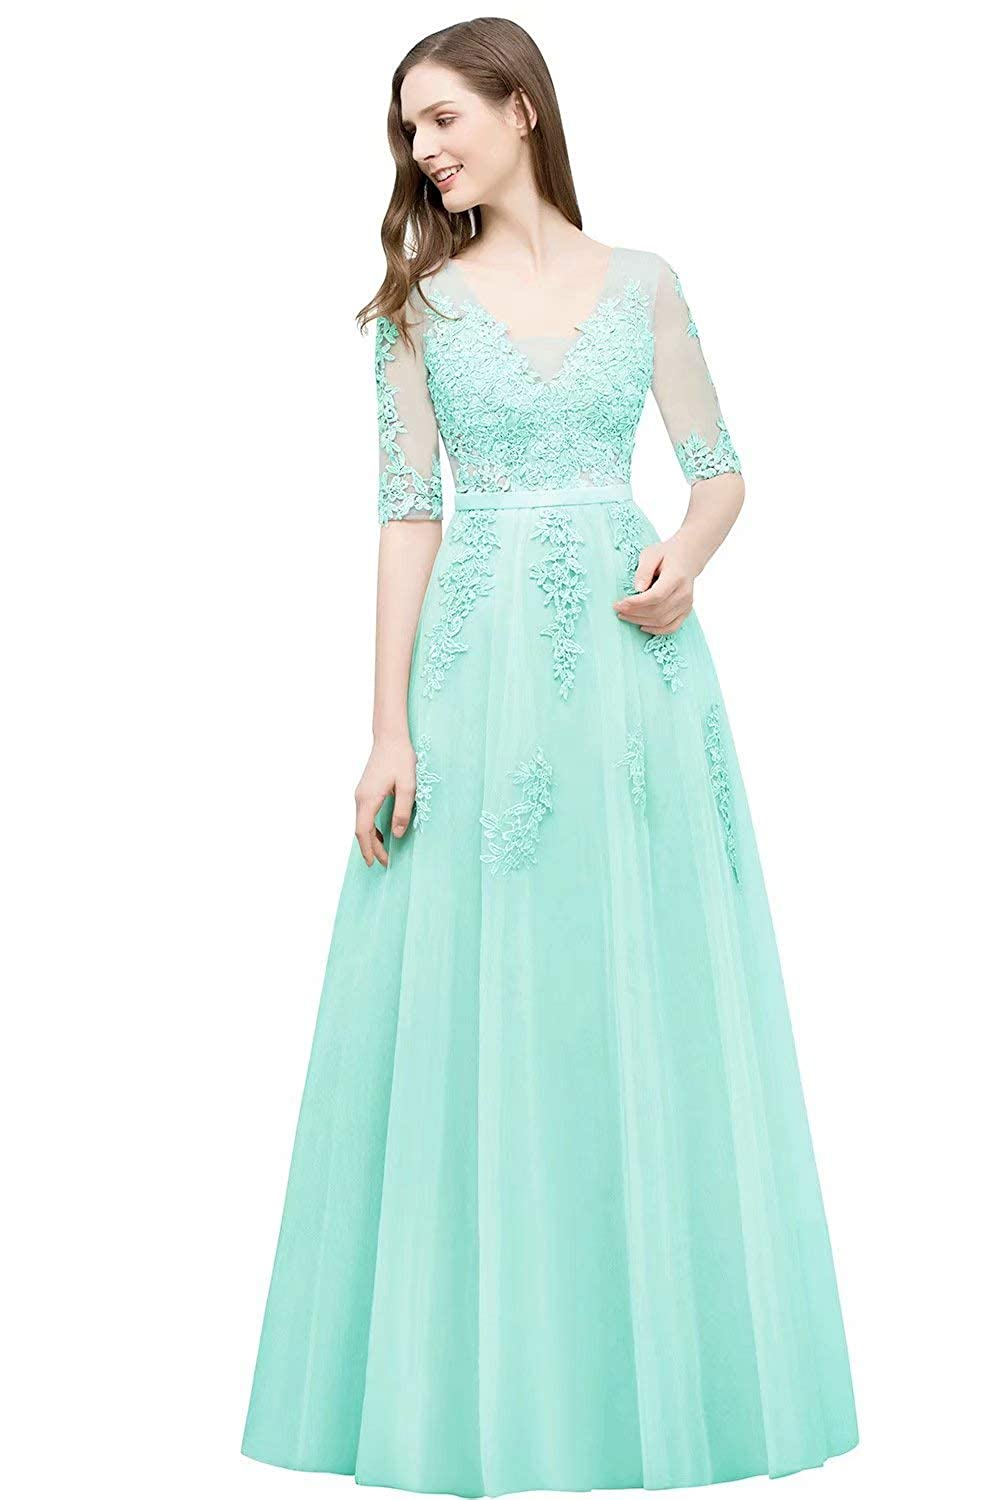 Green Unions Women V Neck Tulle Prom Party Gown A Line Appliques Lace Formal Backless Evening Dress